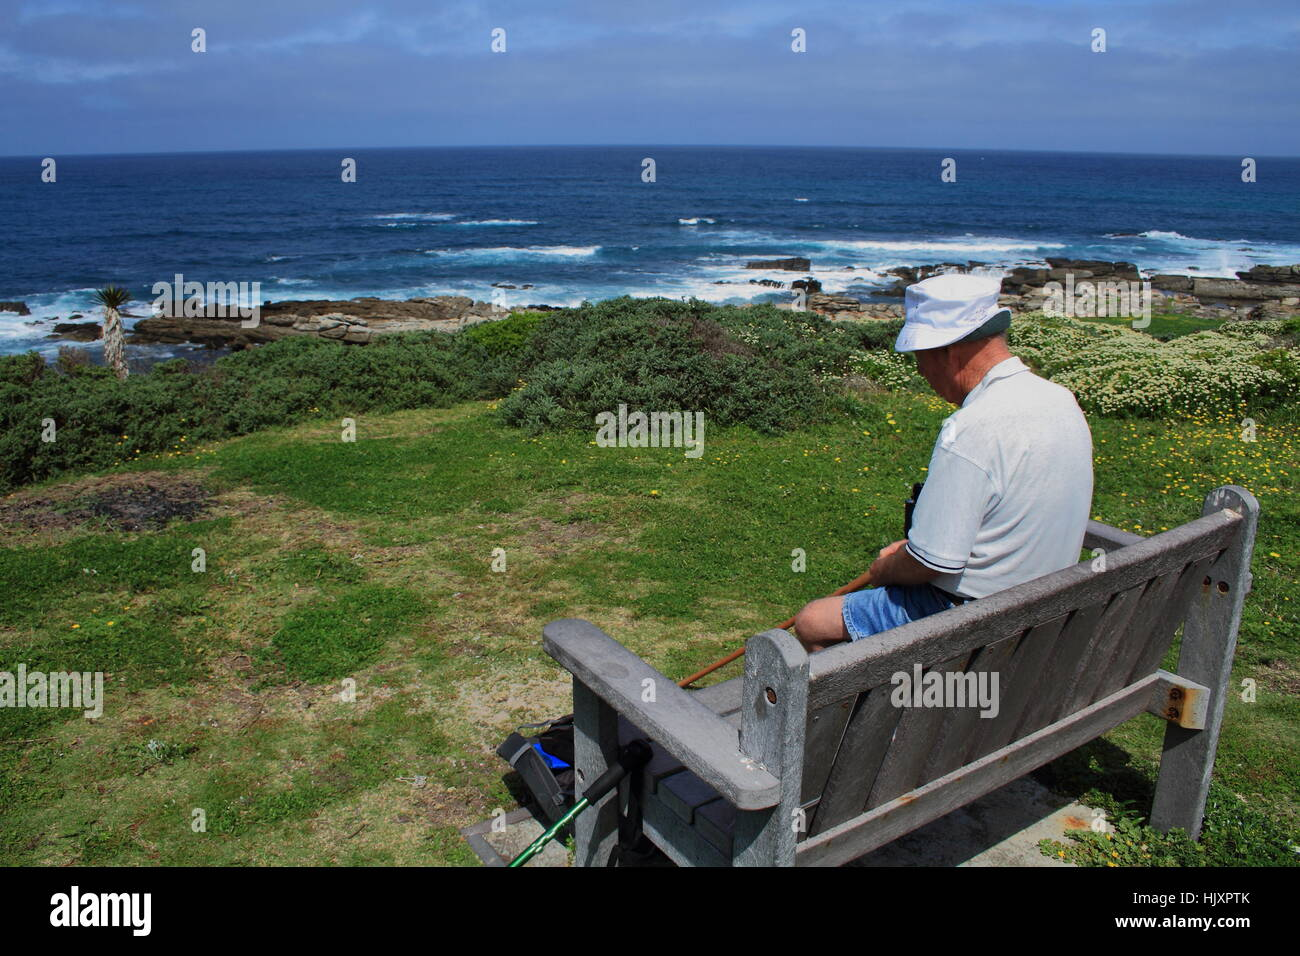 Old man sits next to the sea deep in thought image in landscape format with copy space - Stock Image